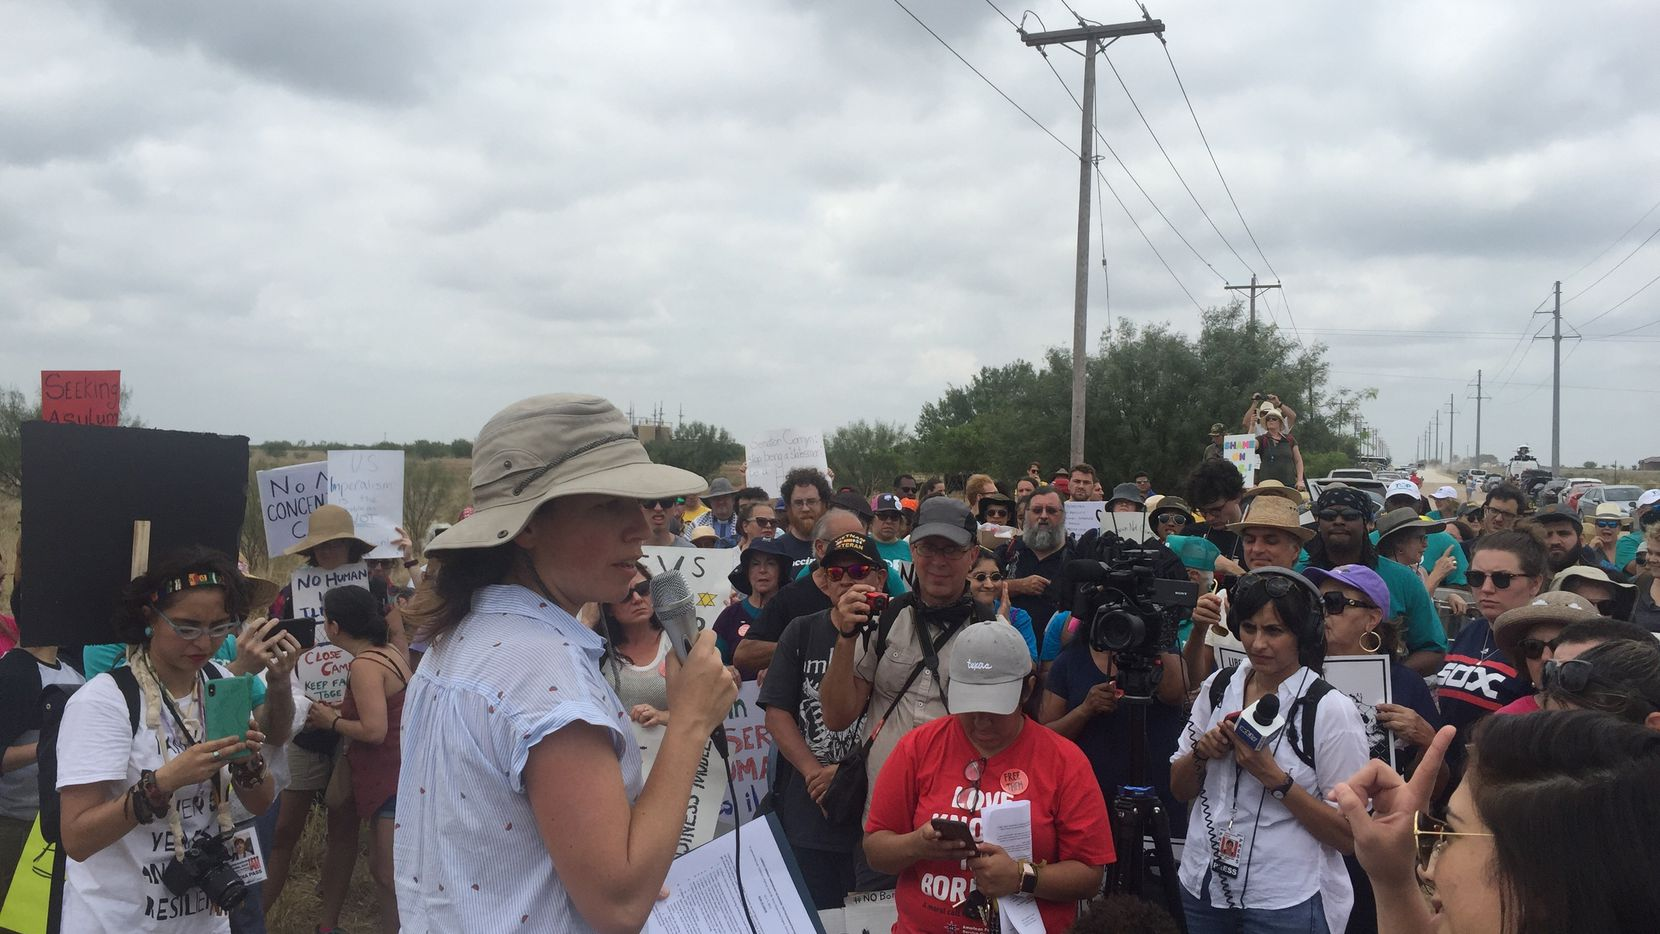 Cheasty Anderson, senior policy director for Children's Defense Fund Texas and one of the organizers of the protest, spoke as activists gathered to call for an end to migrant child detention in Carrizo Springs, Texas.